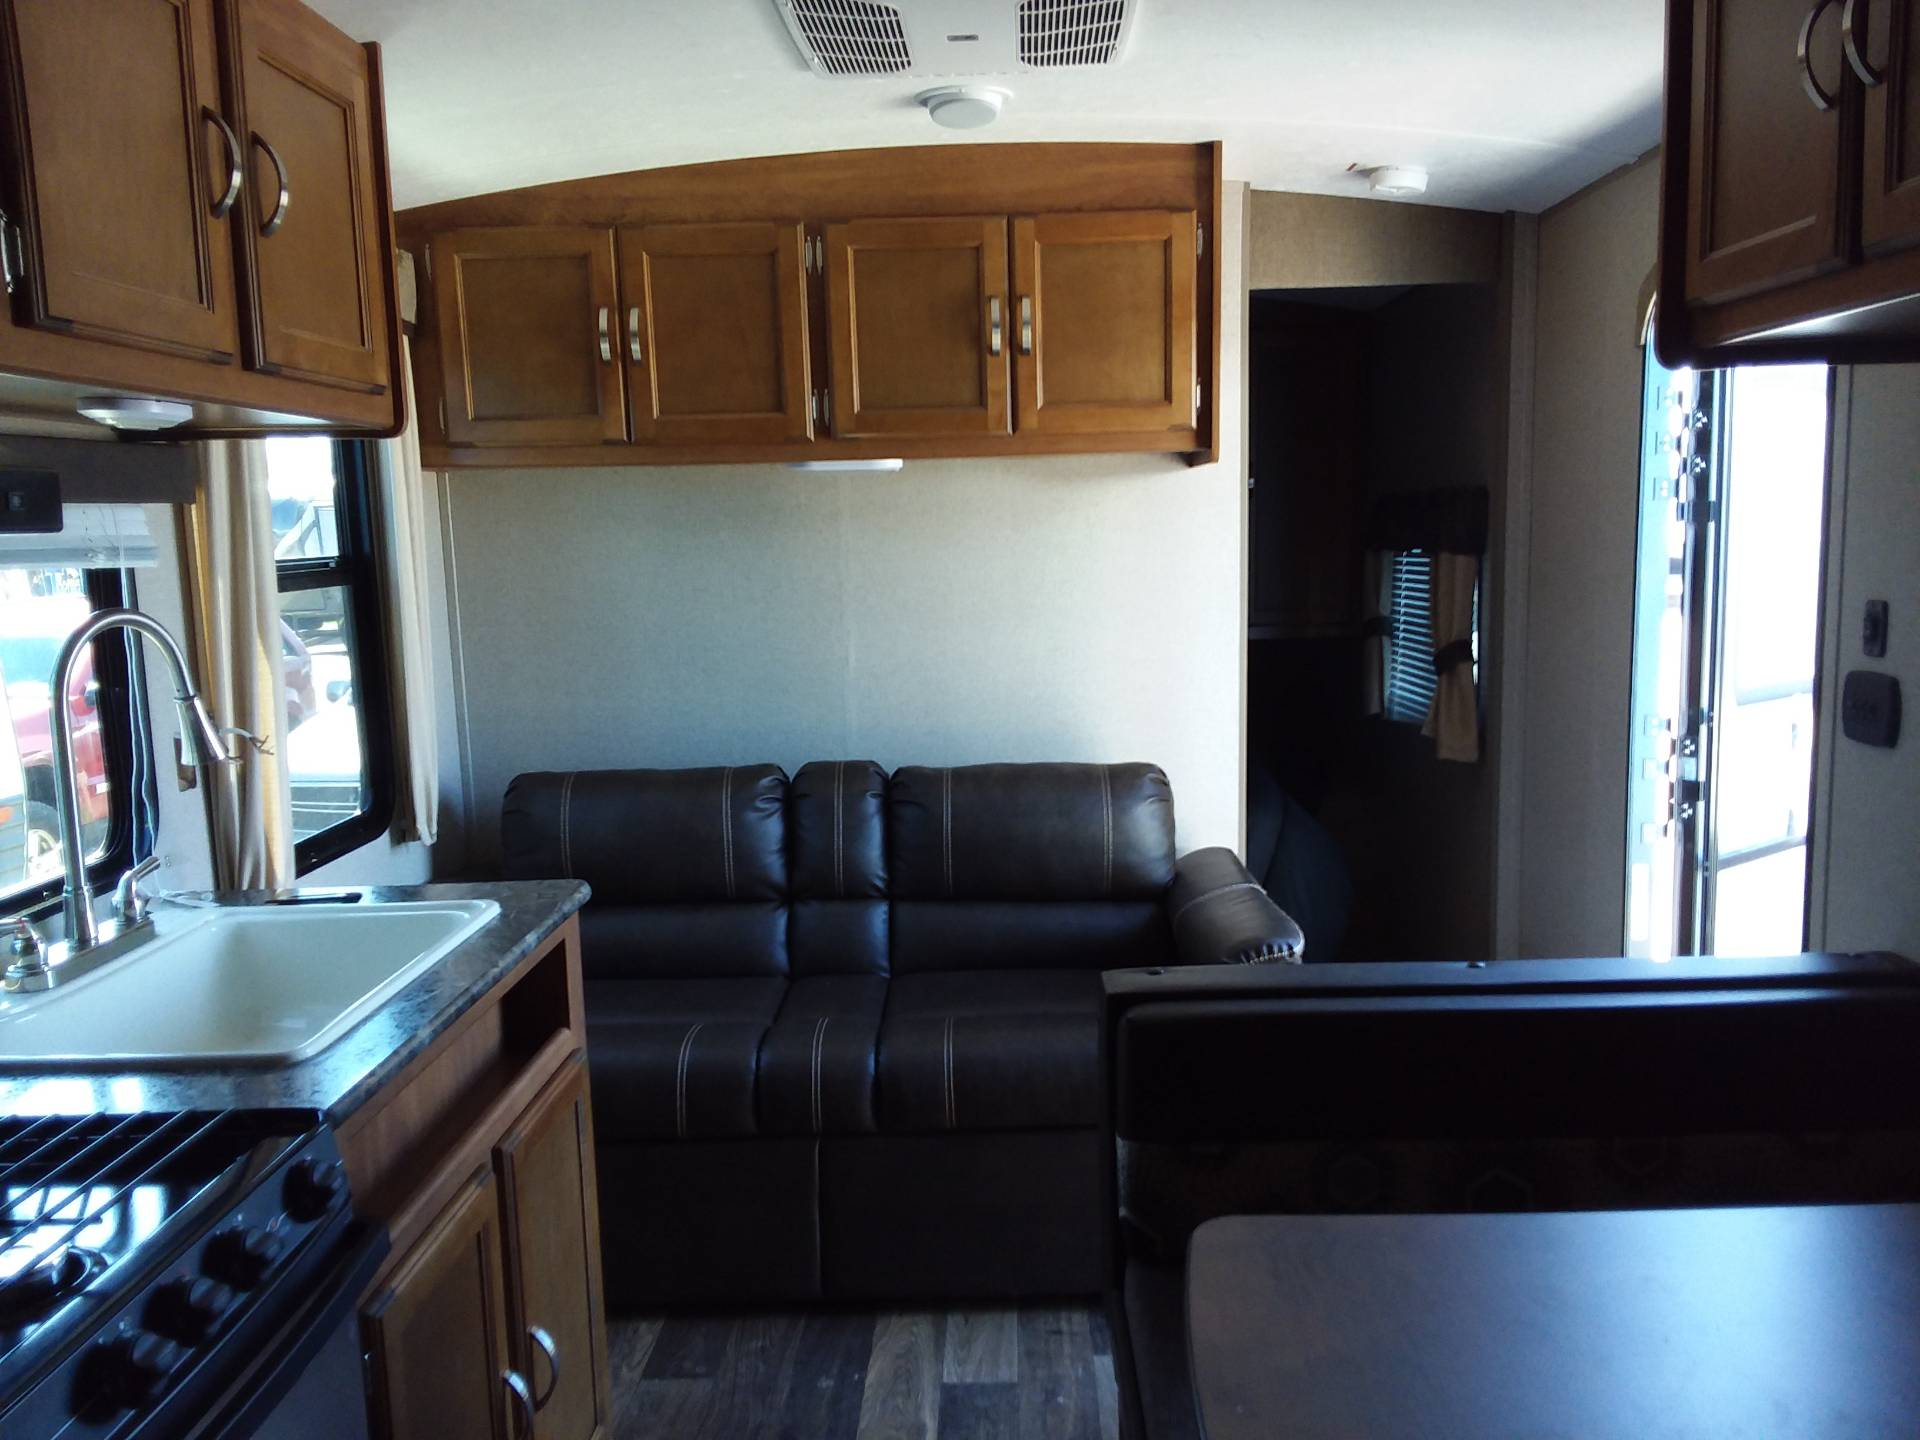 2017 Keystone RV Company SPRINGDALE in Malone, New York - Photo 2